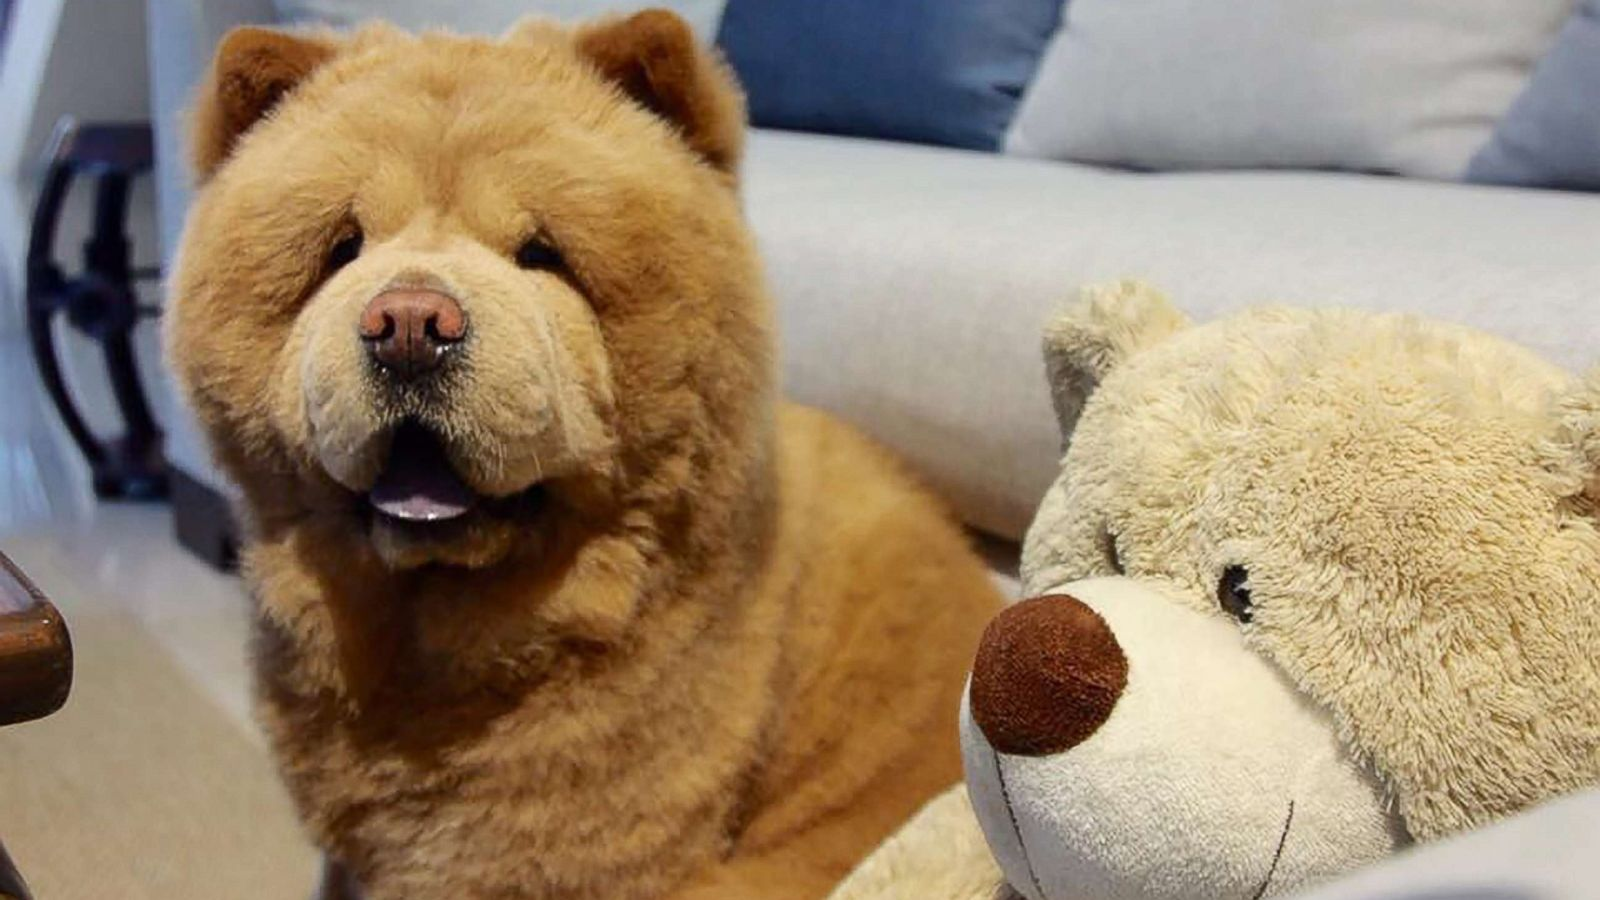 Riveting Adoption Fluffy Dog That Resembles Bear Takes Social Media By Storm Abc News Baby Chow Chow Walking Baby Chow Chow bark post Baby Chow Chow